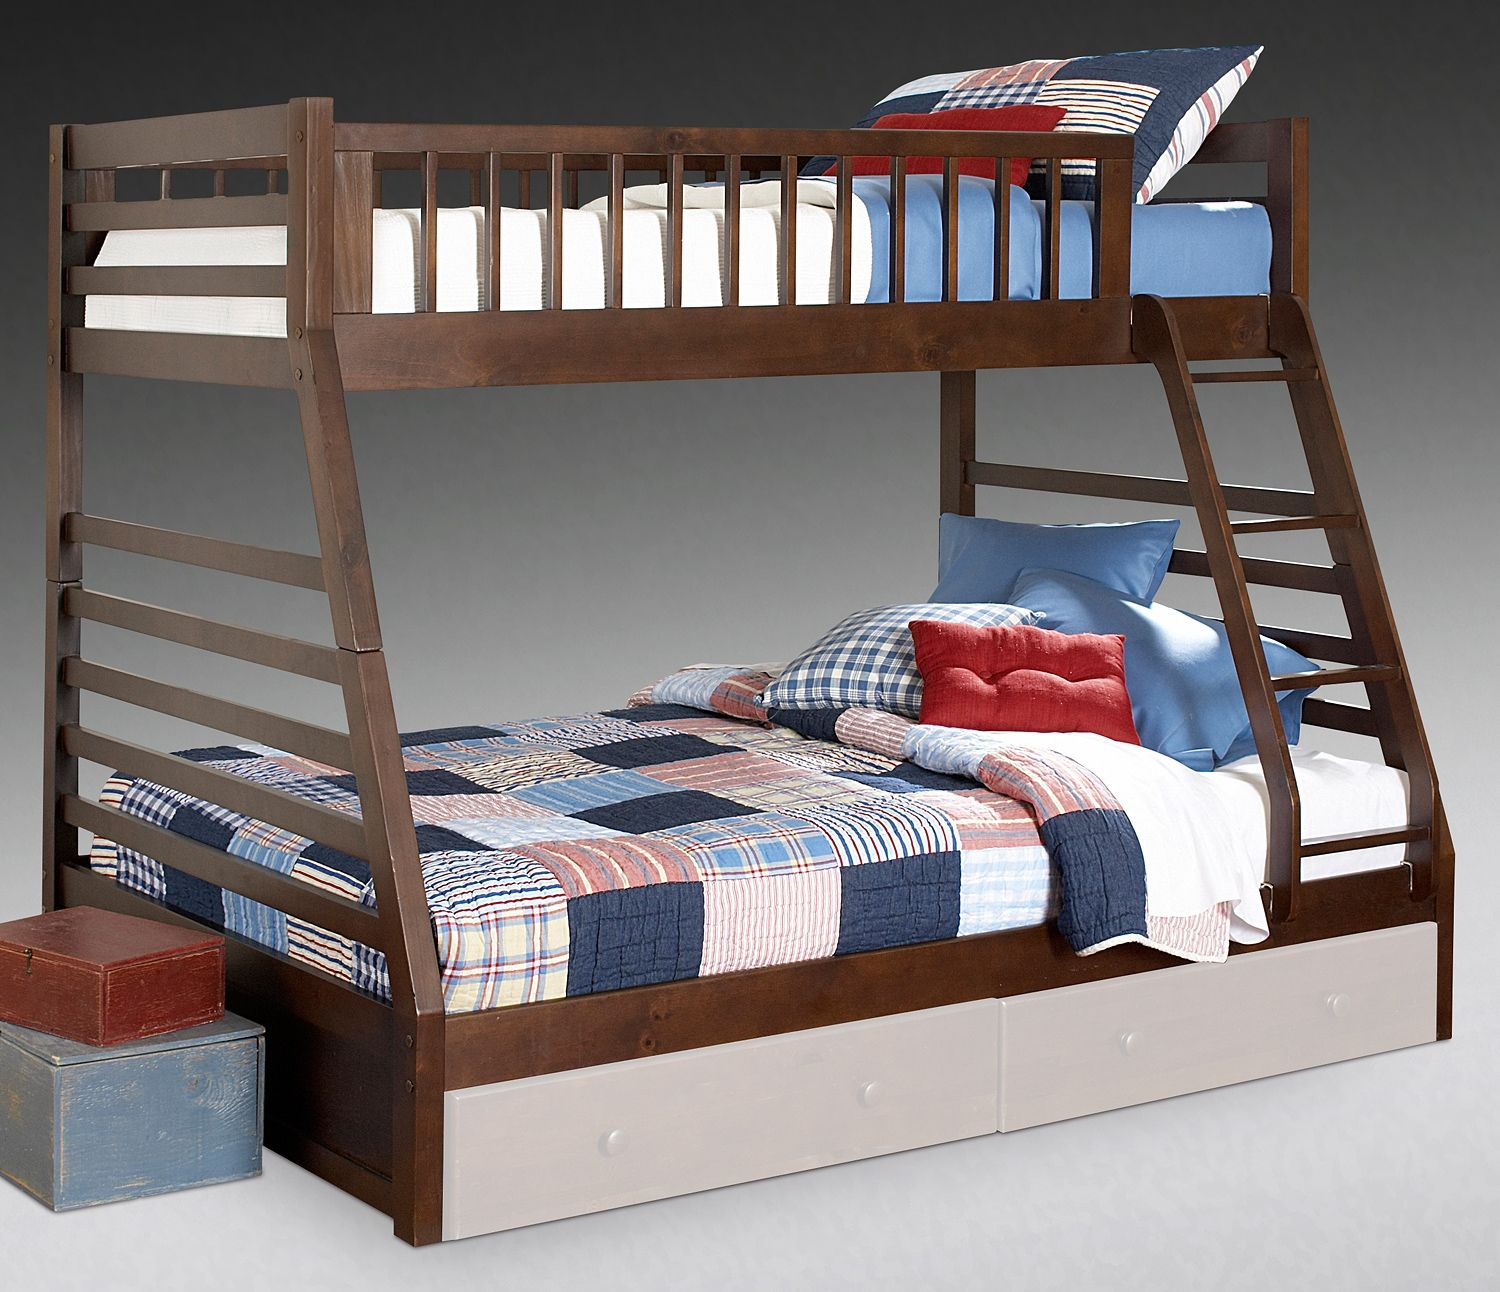 Twin Full 499 Leons Bunk Beds With Storage Twin Full Bunk Bed